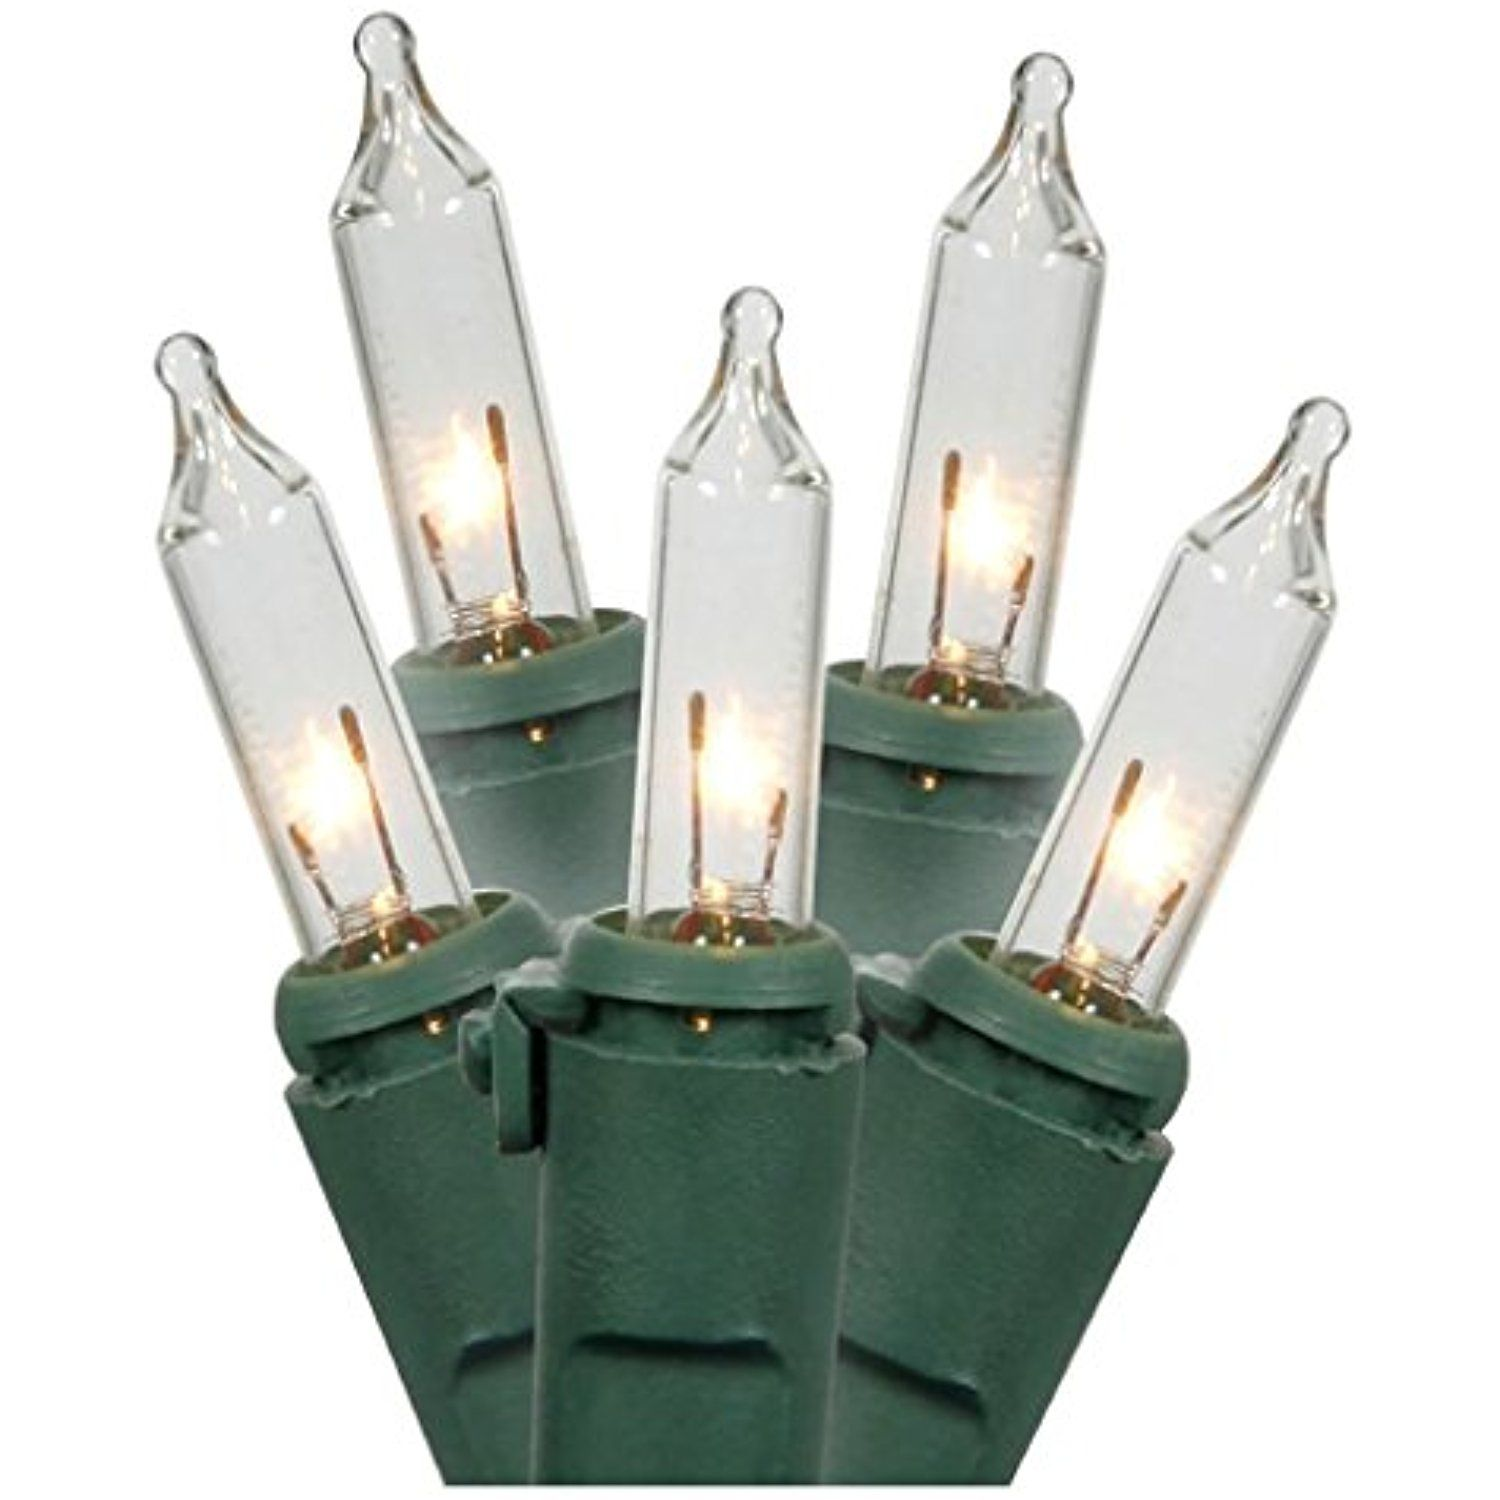 vickerman w5g0451 ec lock 50 light bulk set clear details can be found by clicking on the image this is an affiliate link stringlights